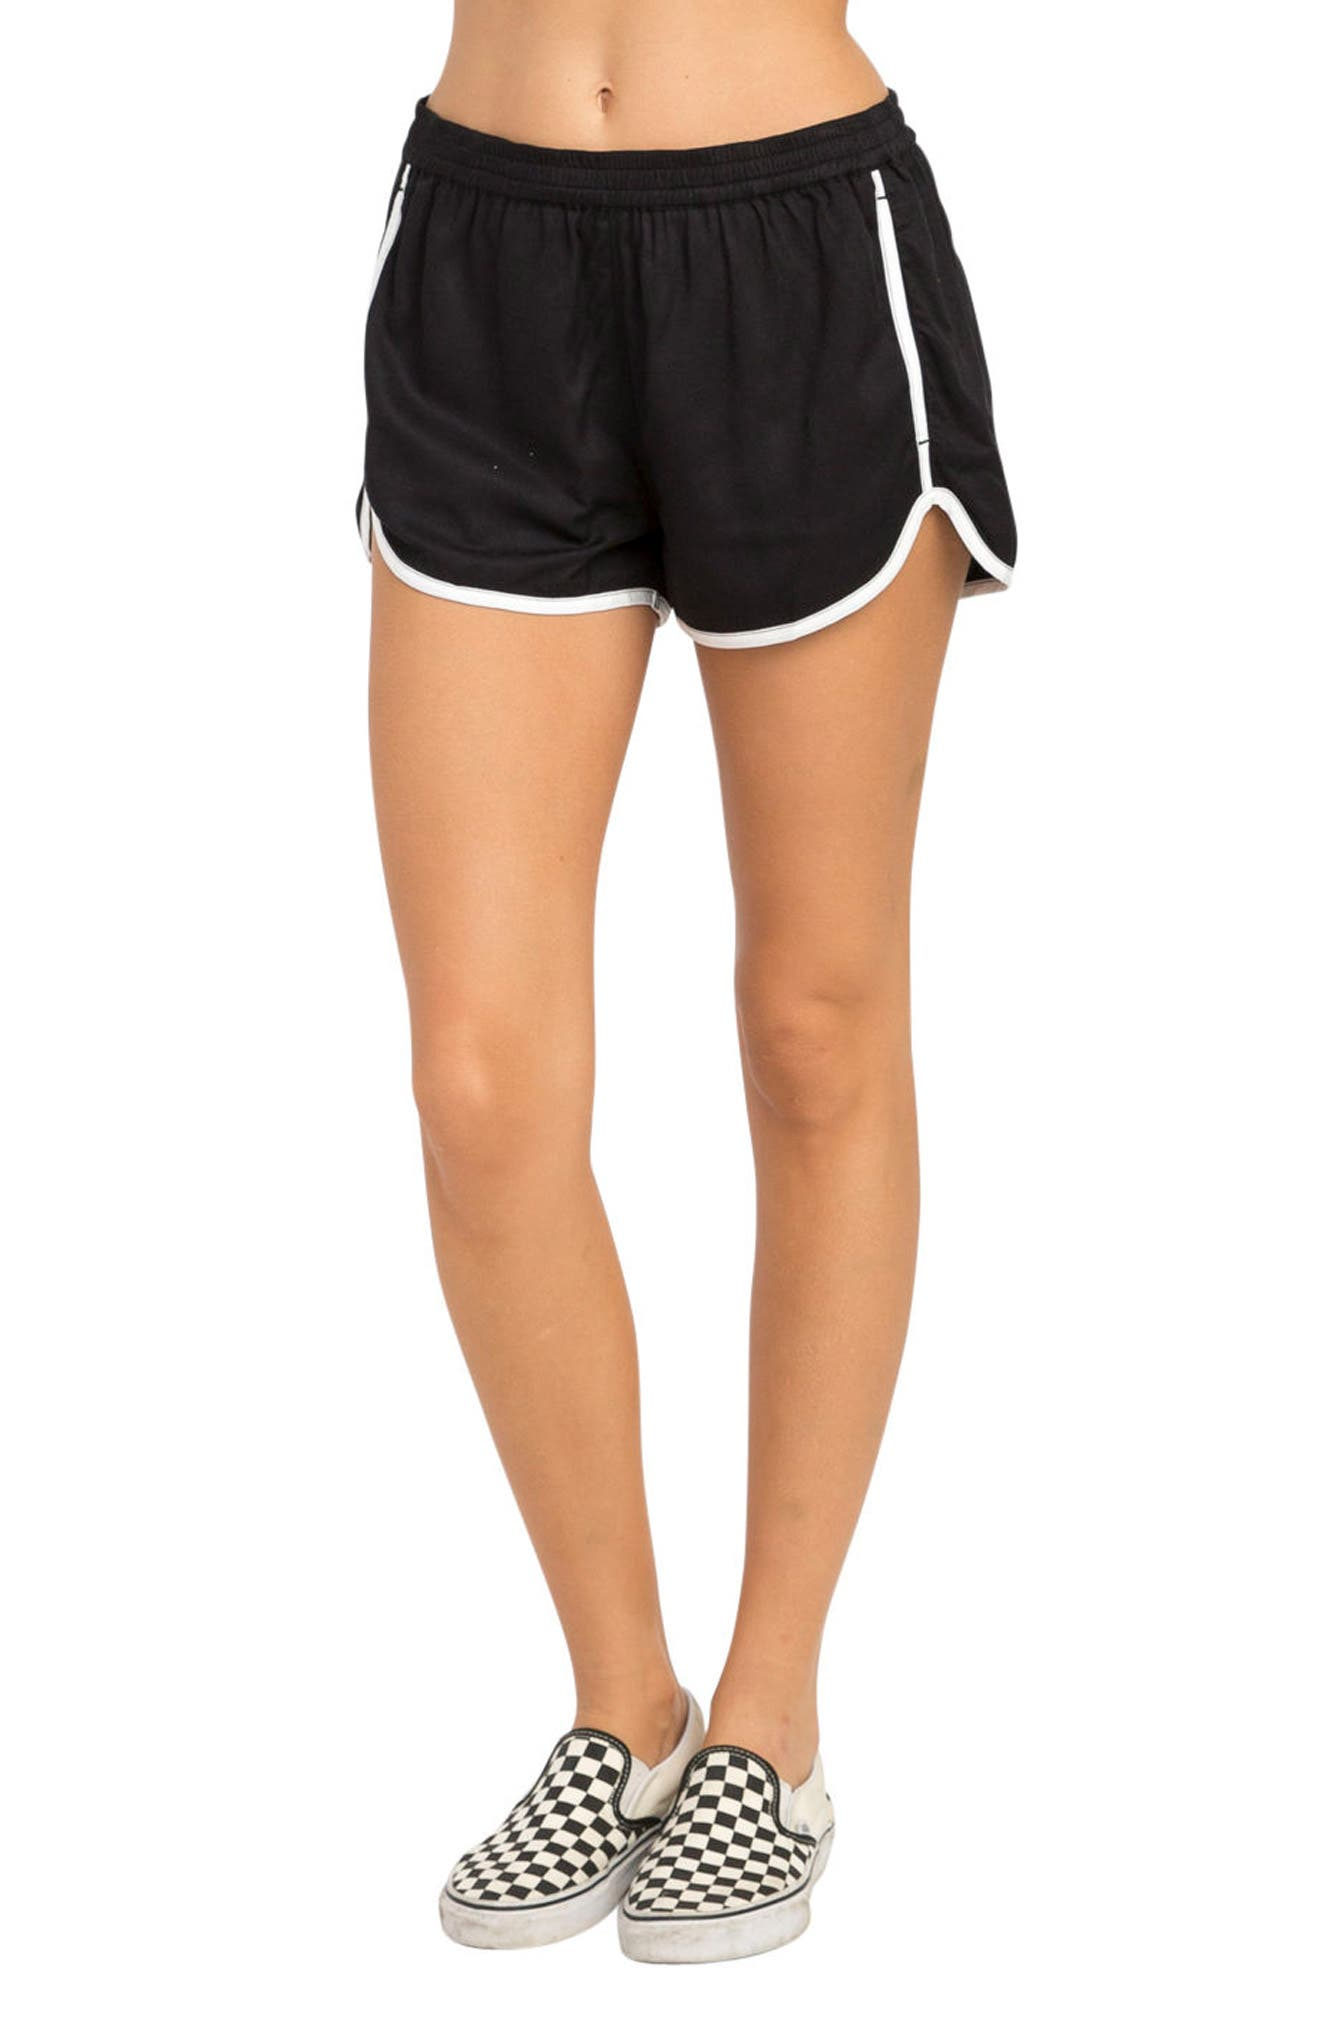 Cruising Dolphin Shorts,                         Main,                         color, Black